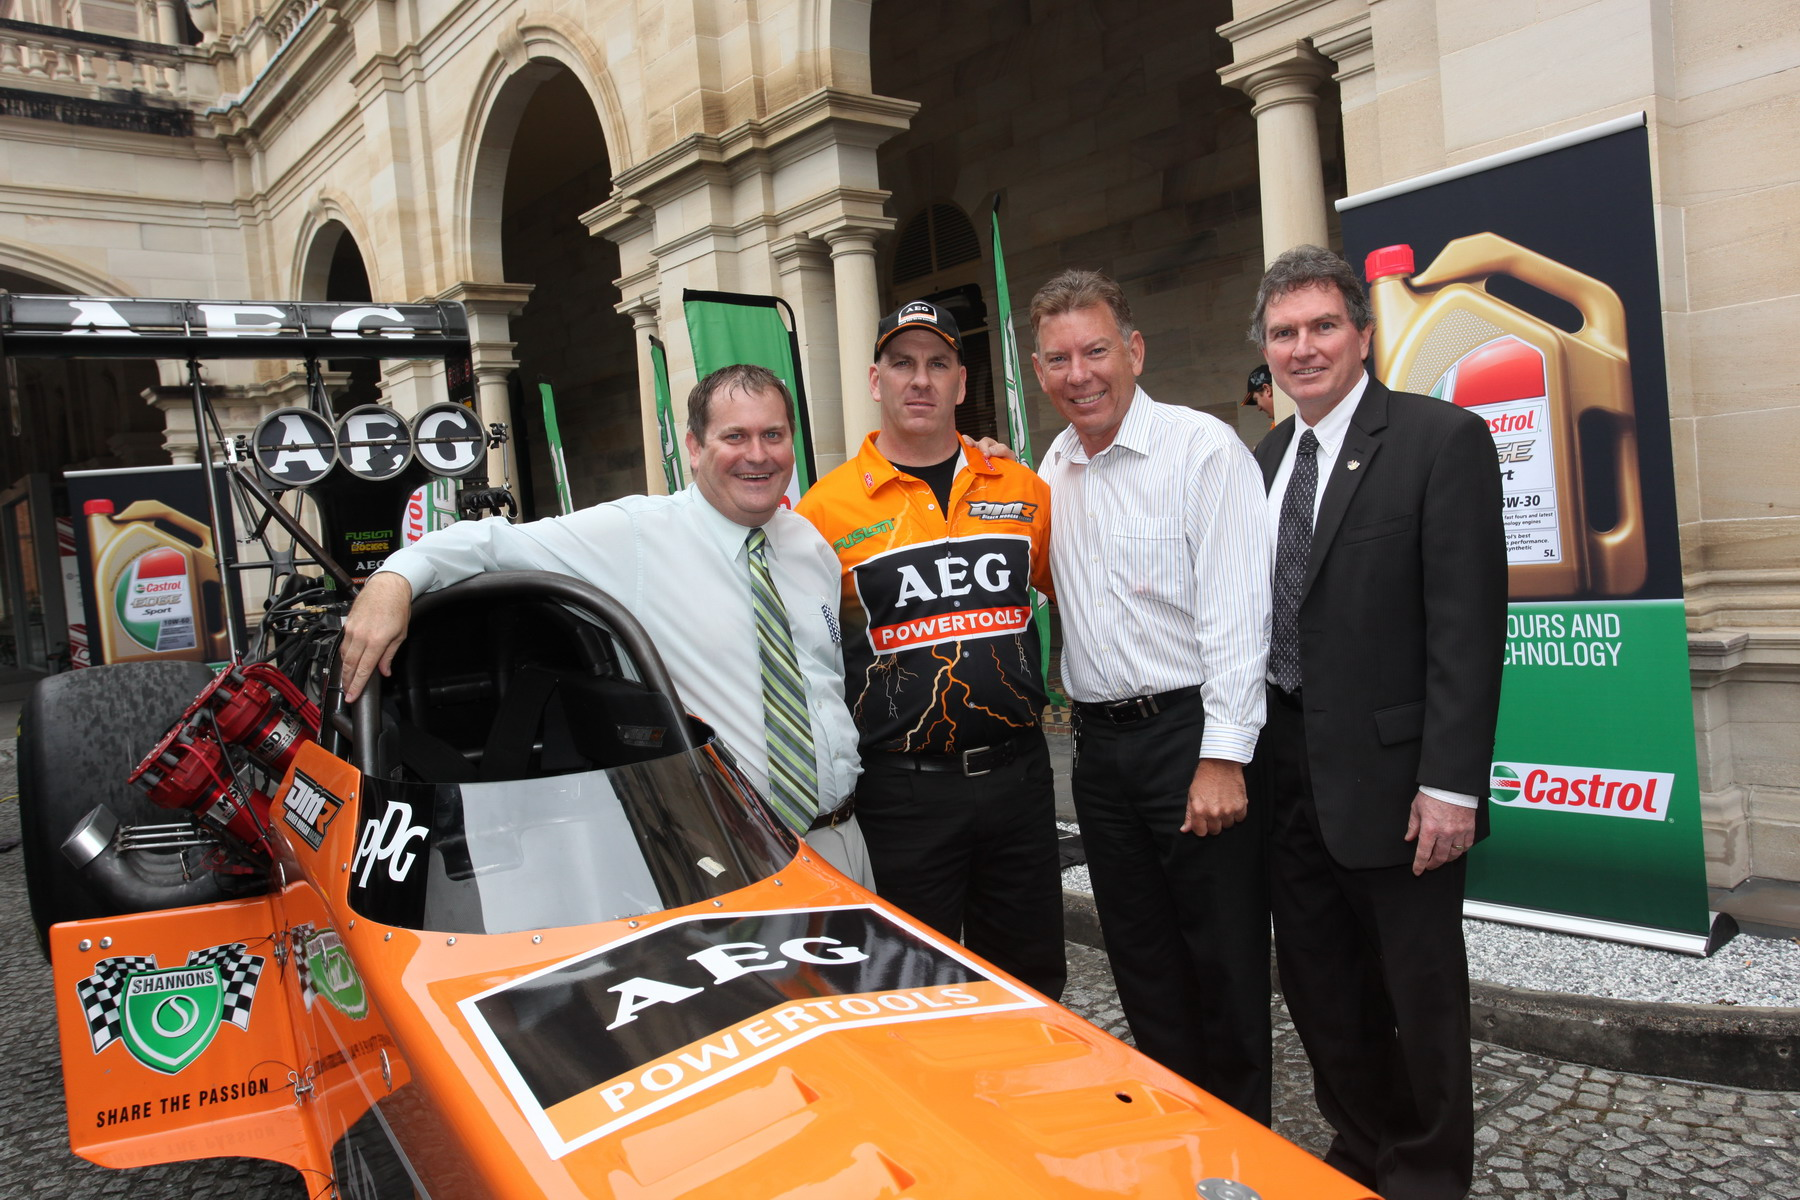 Qld Parliament gets a high-octane visitor